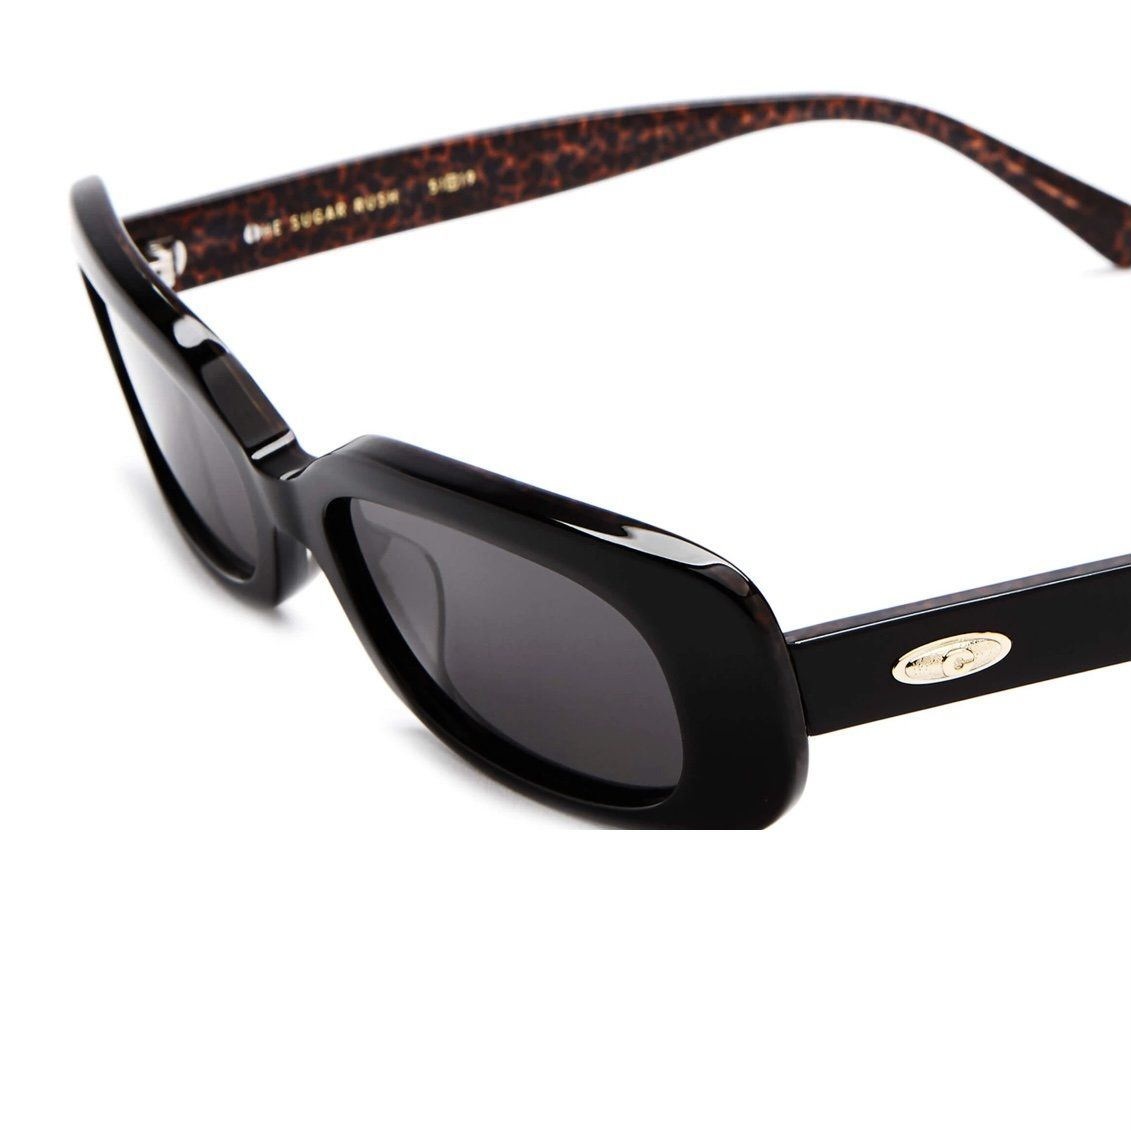 Crap Eyewear The Sugar Rush - Black & Leopard